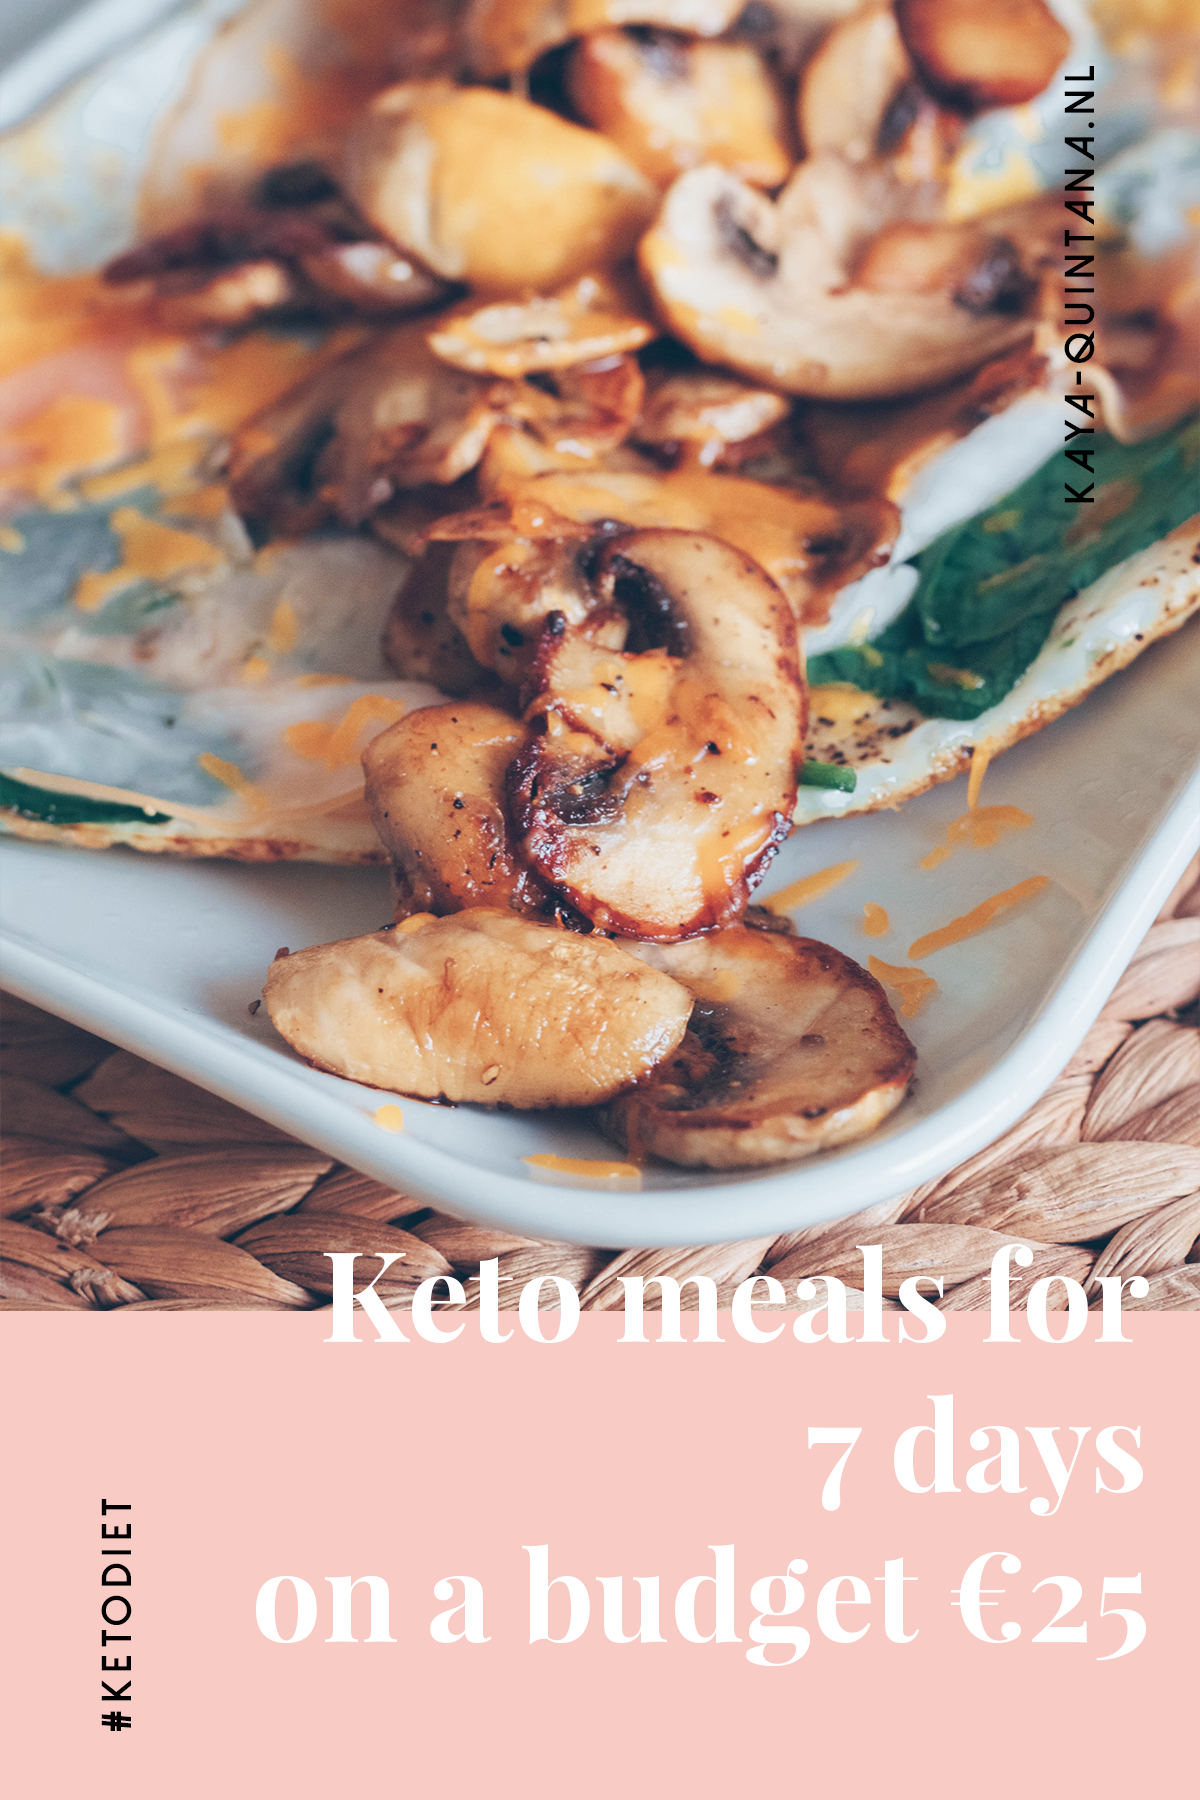 keto meals for 7 days on a budget